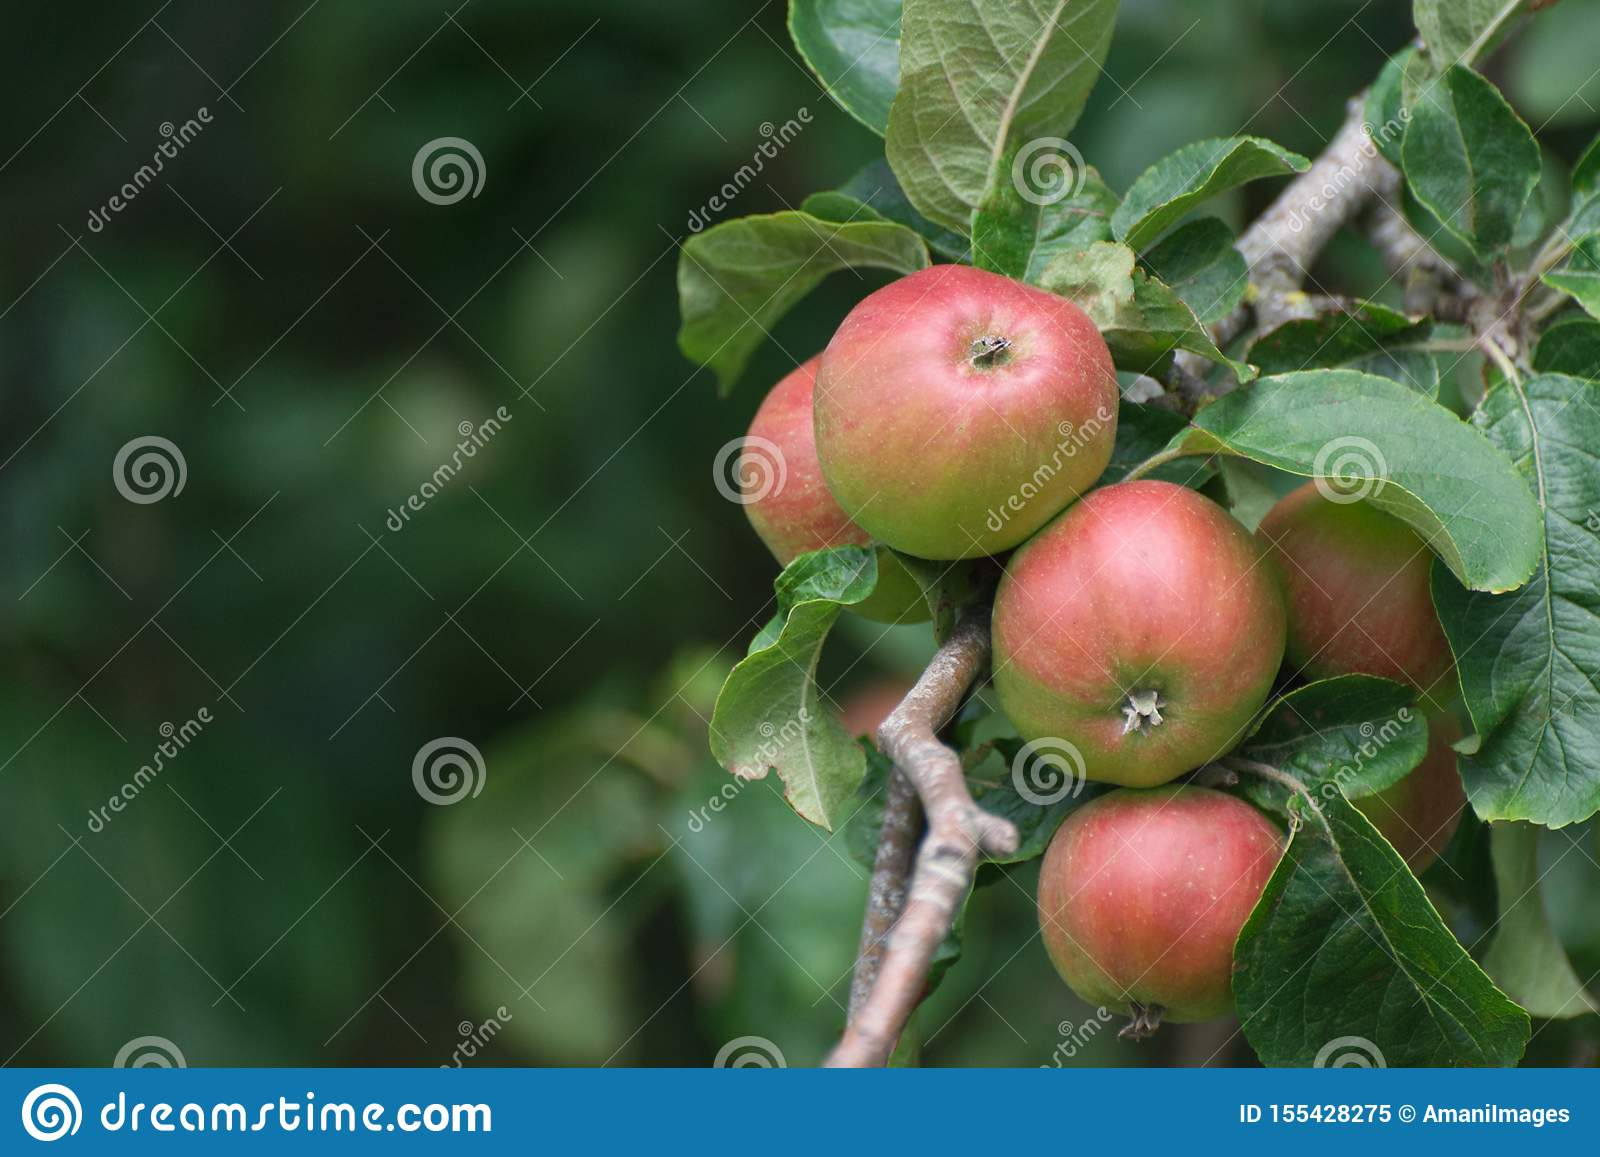 Red and green apples on an apple tree